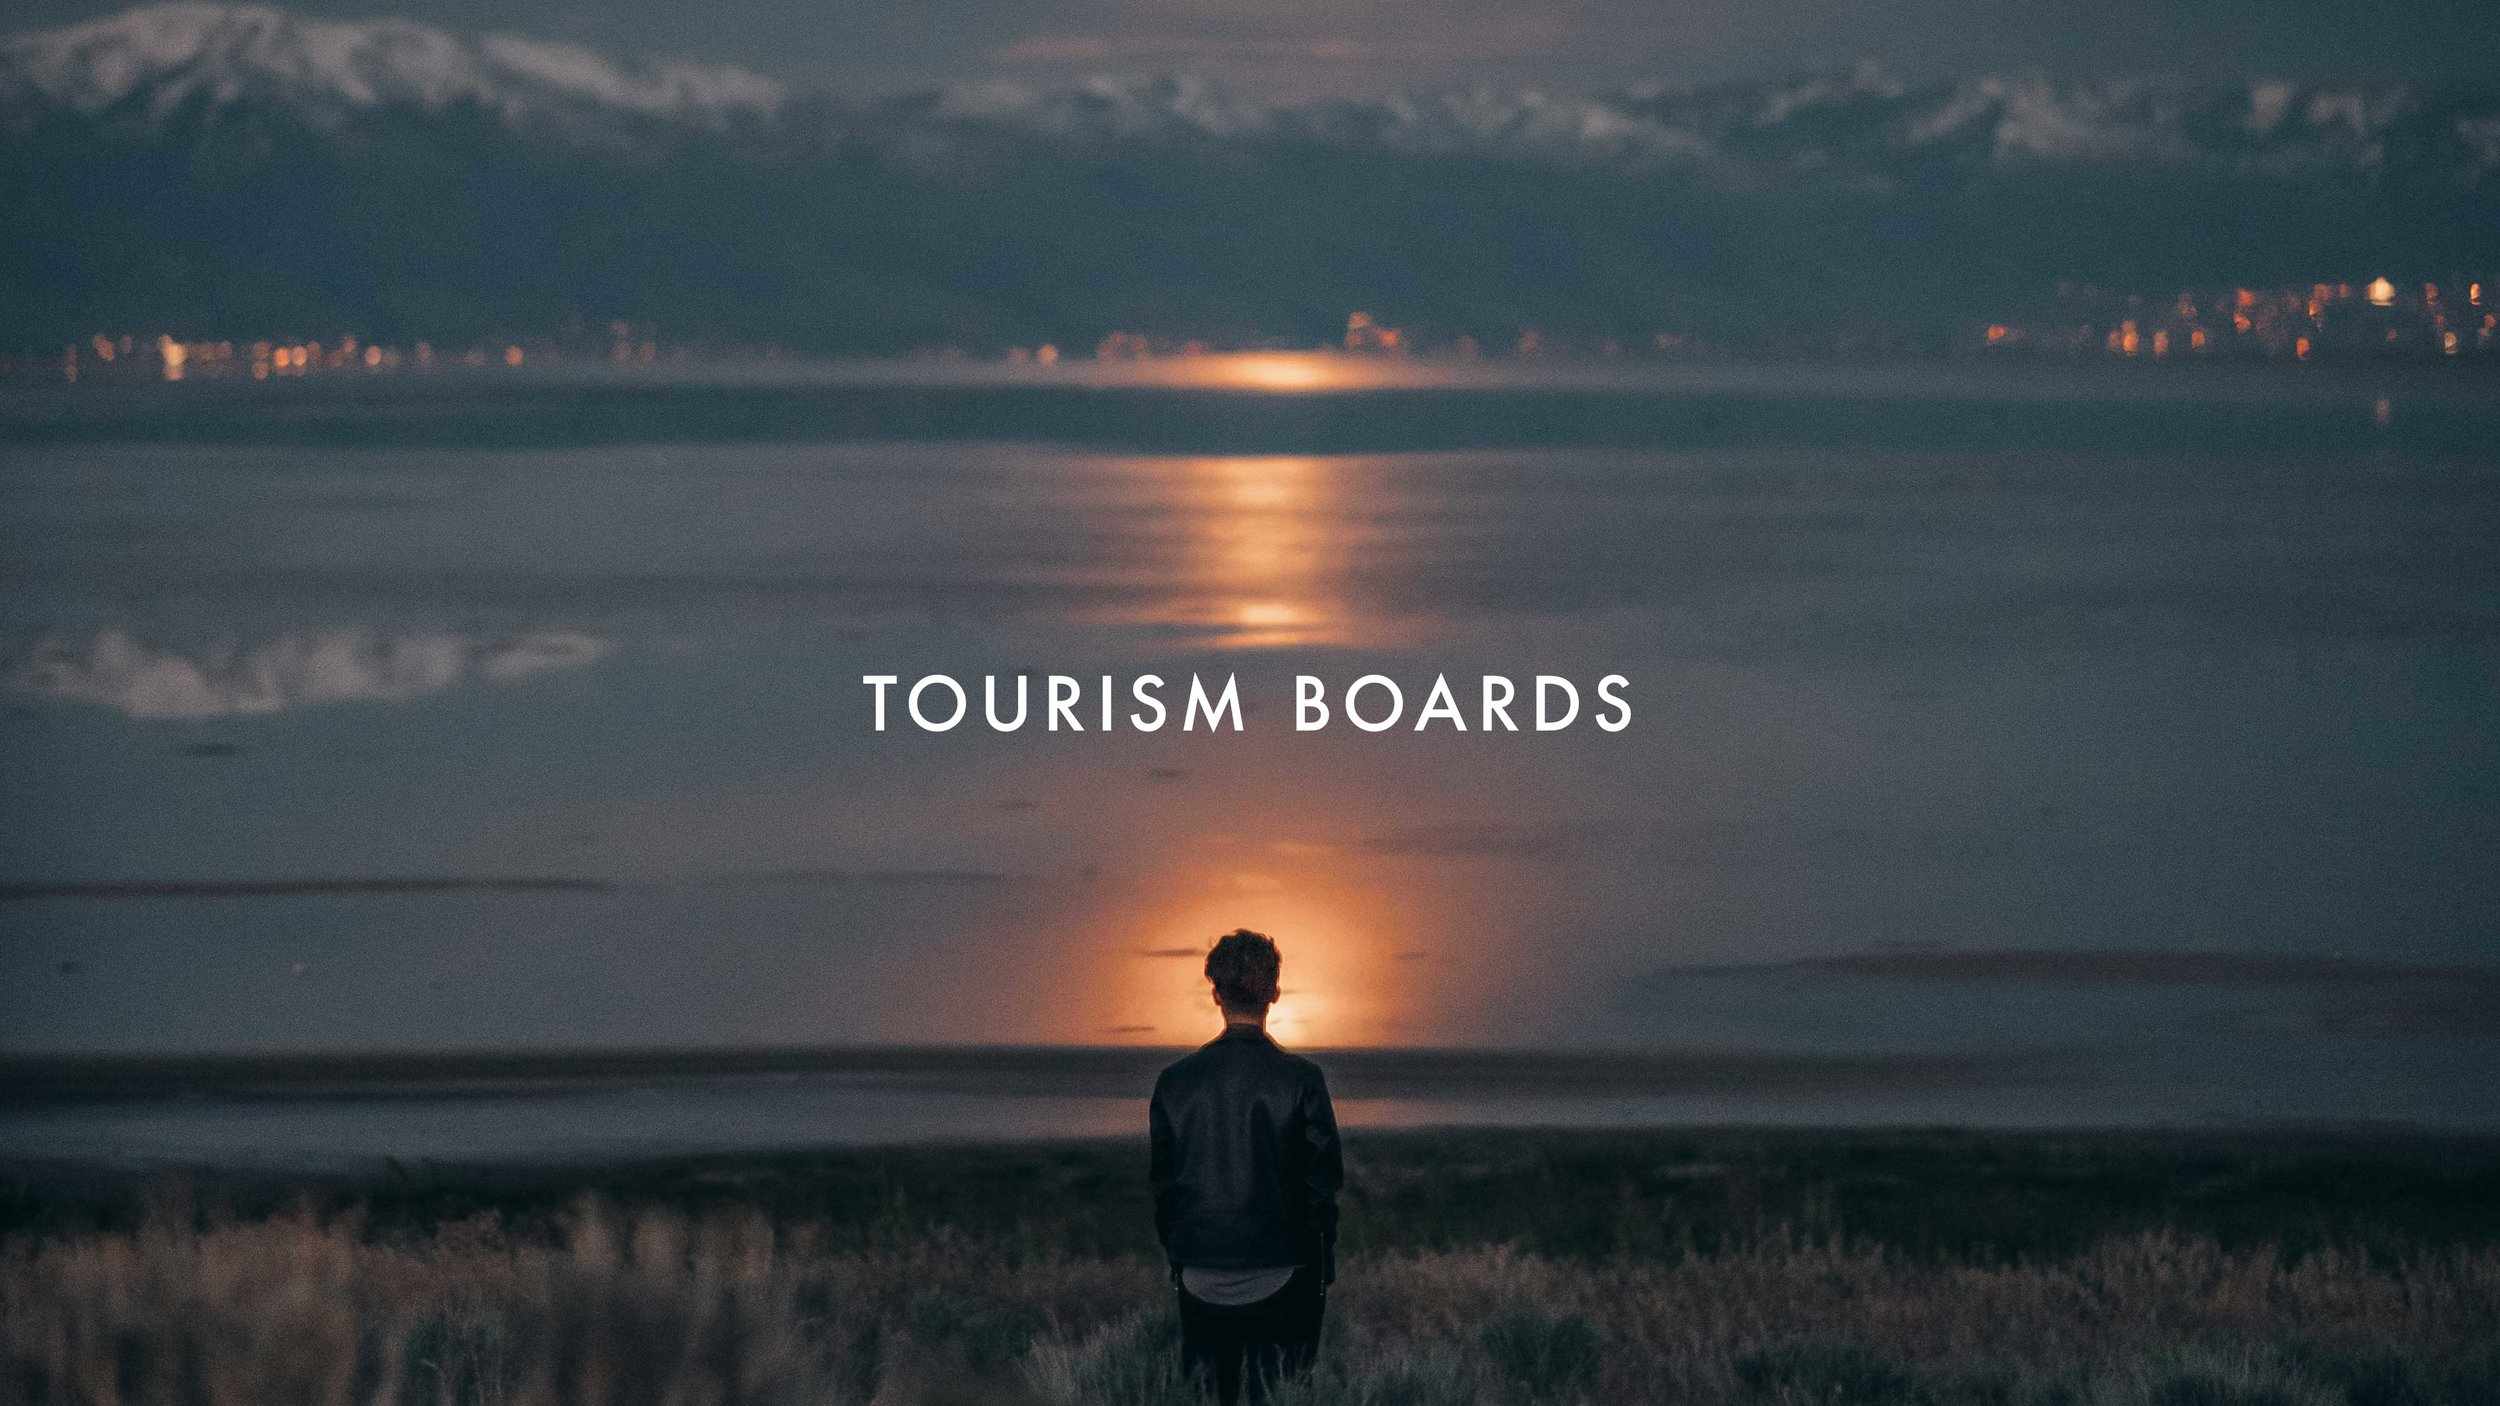 Tourismboards.jpg